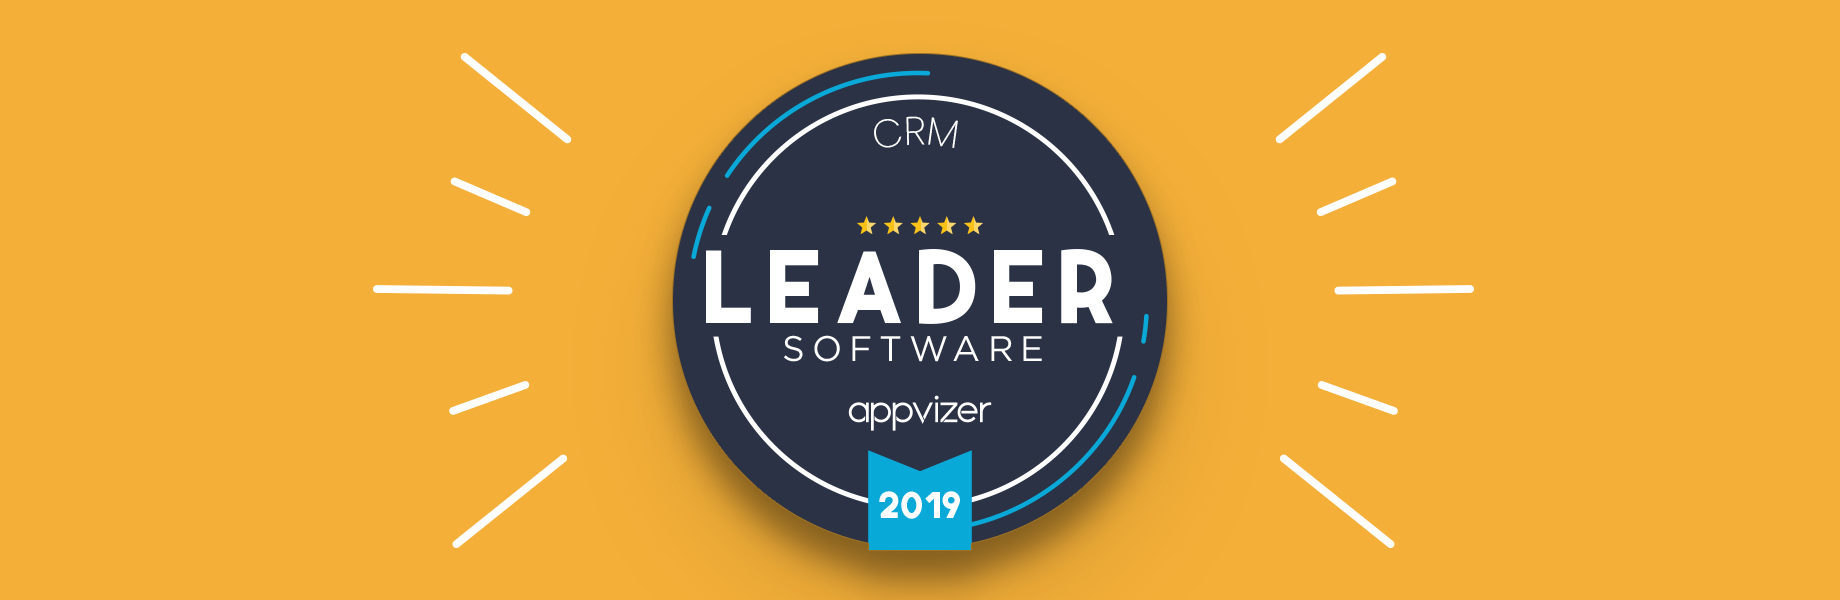 Su quali criteri appvizer attribuisce il badge Leader ad un software?